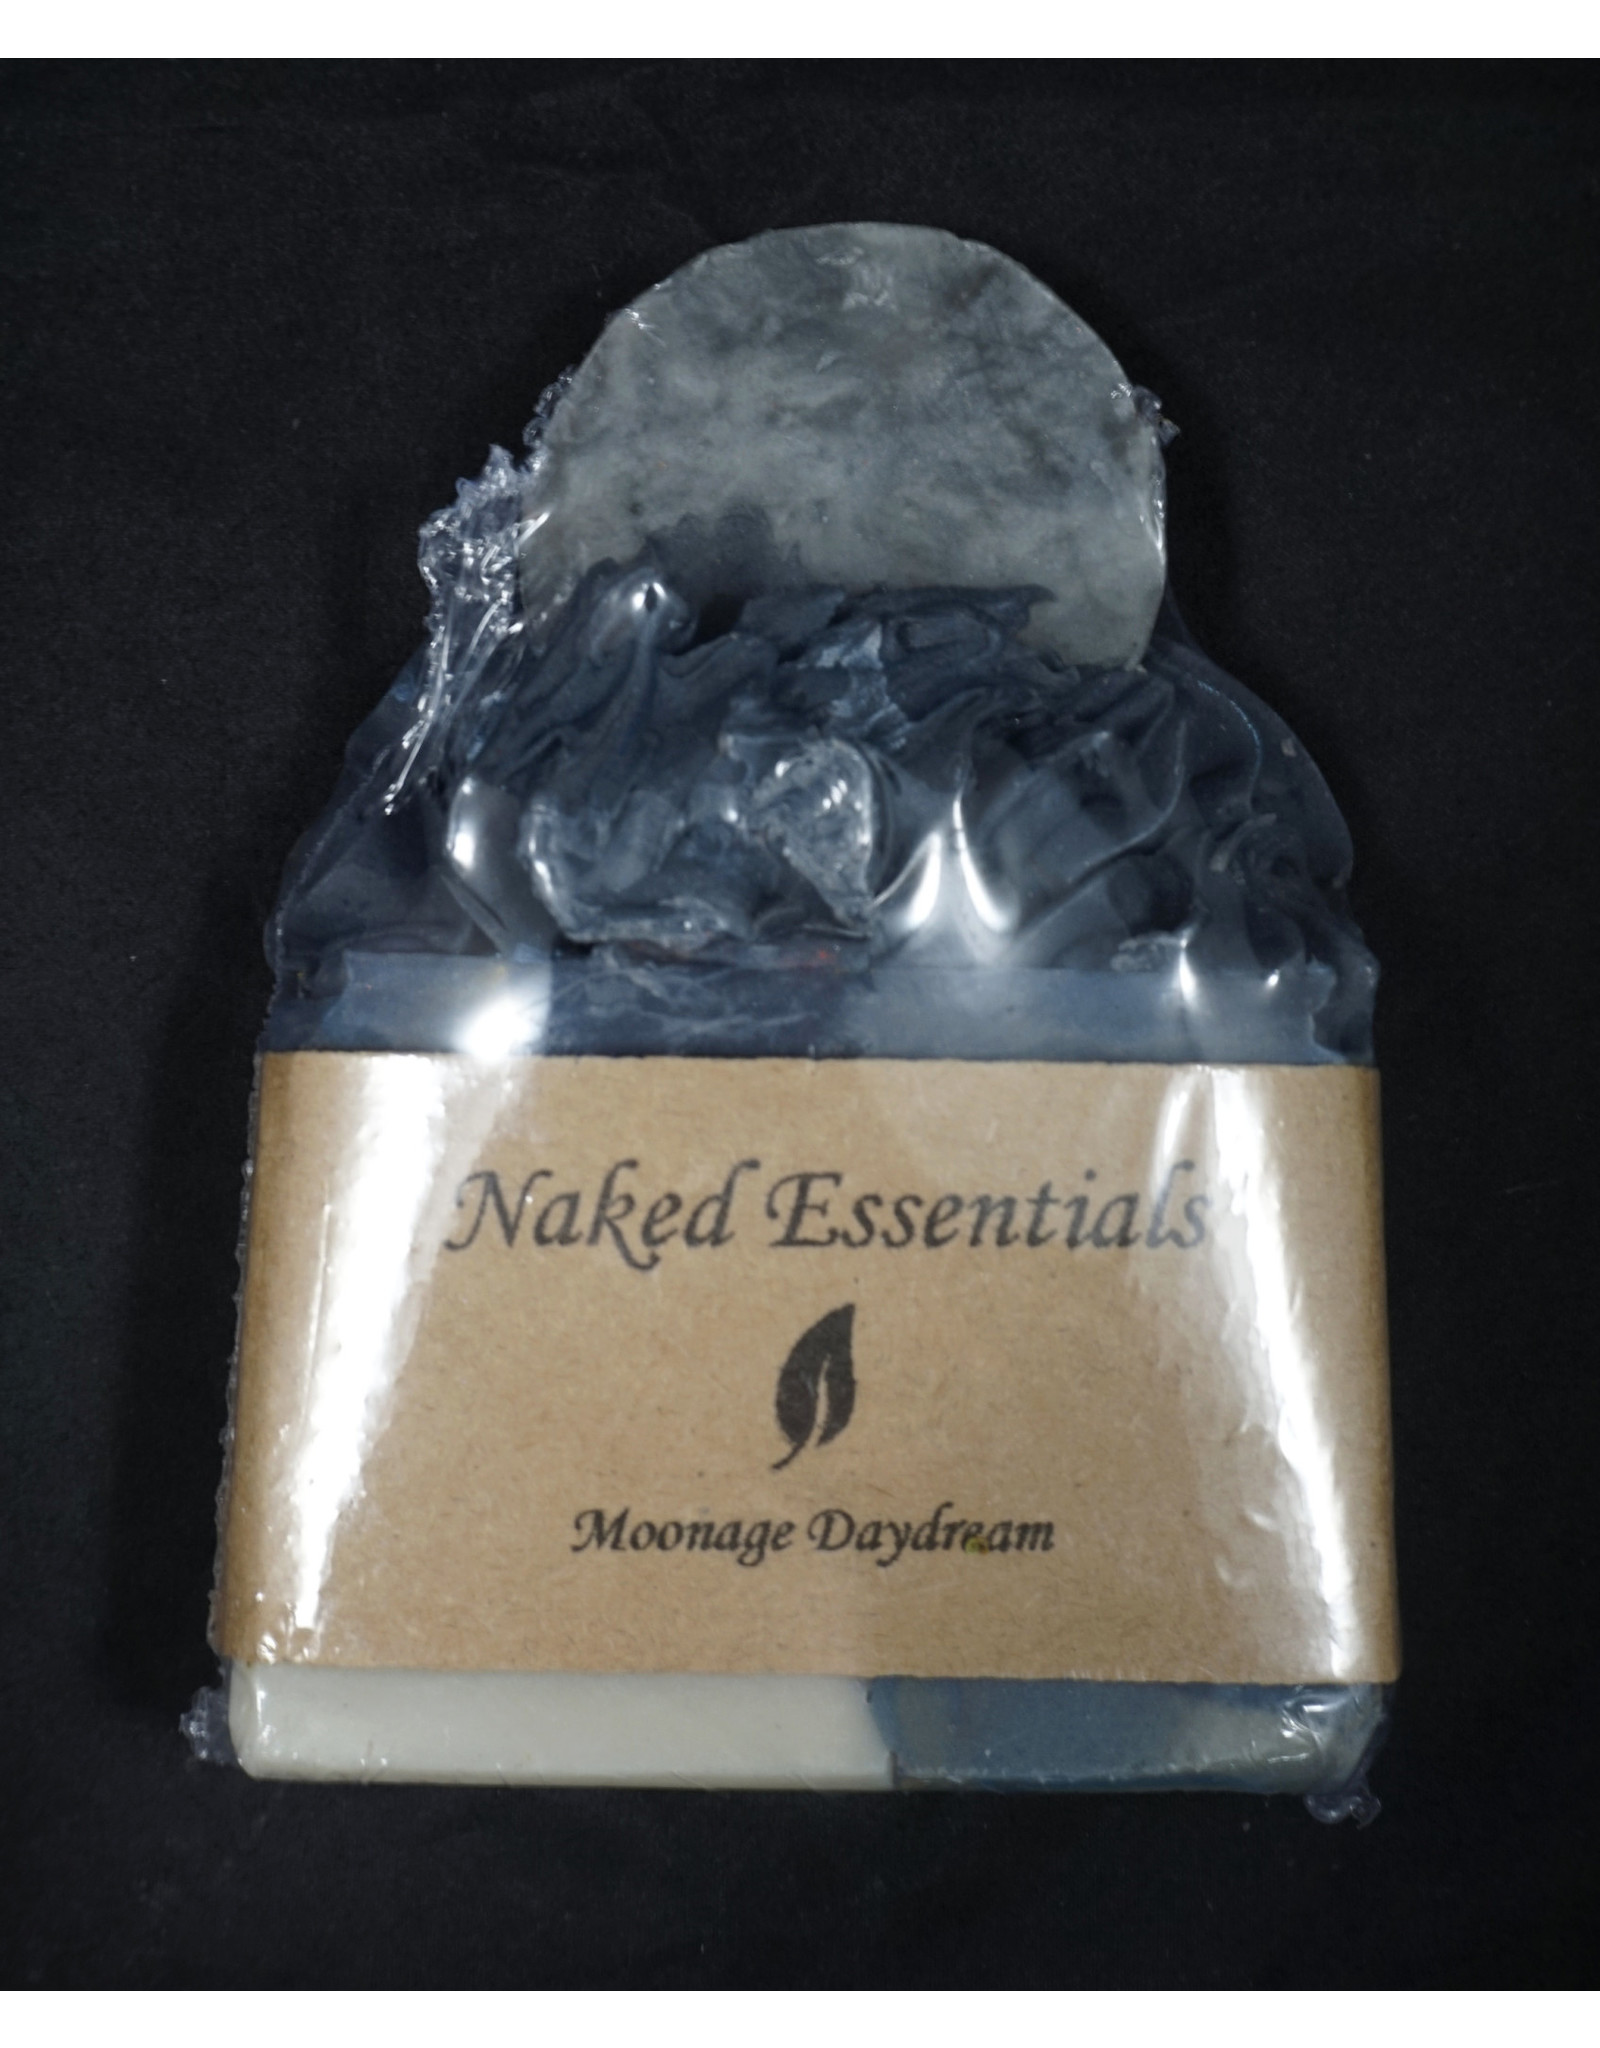 Naked Essentials Naked Essentials – Moonage Daydream